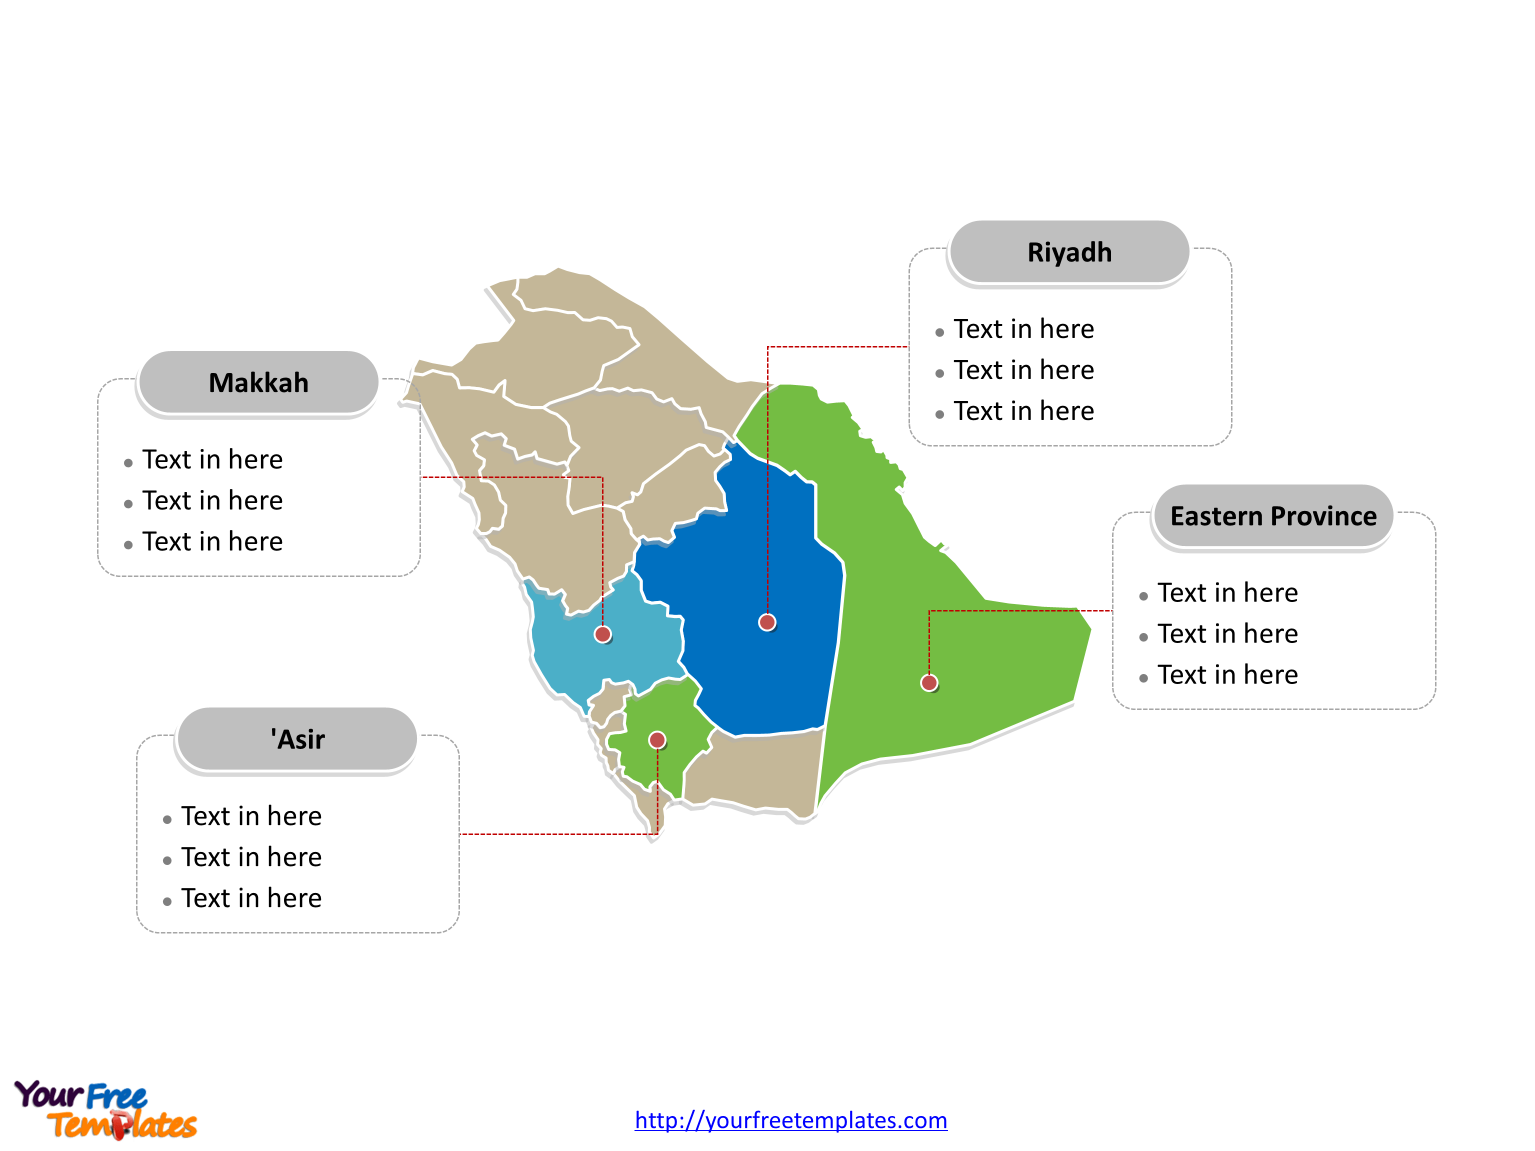 Saudi Arabia Political map labeled with major regions